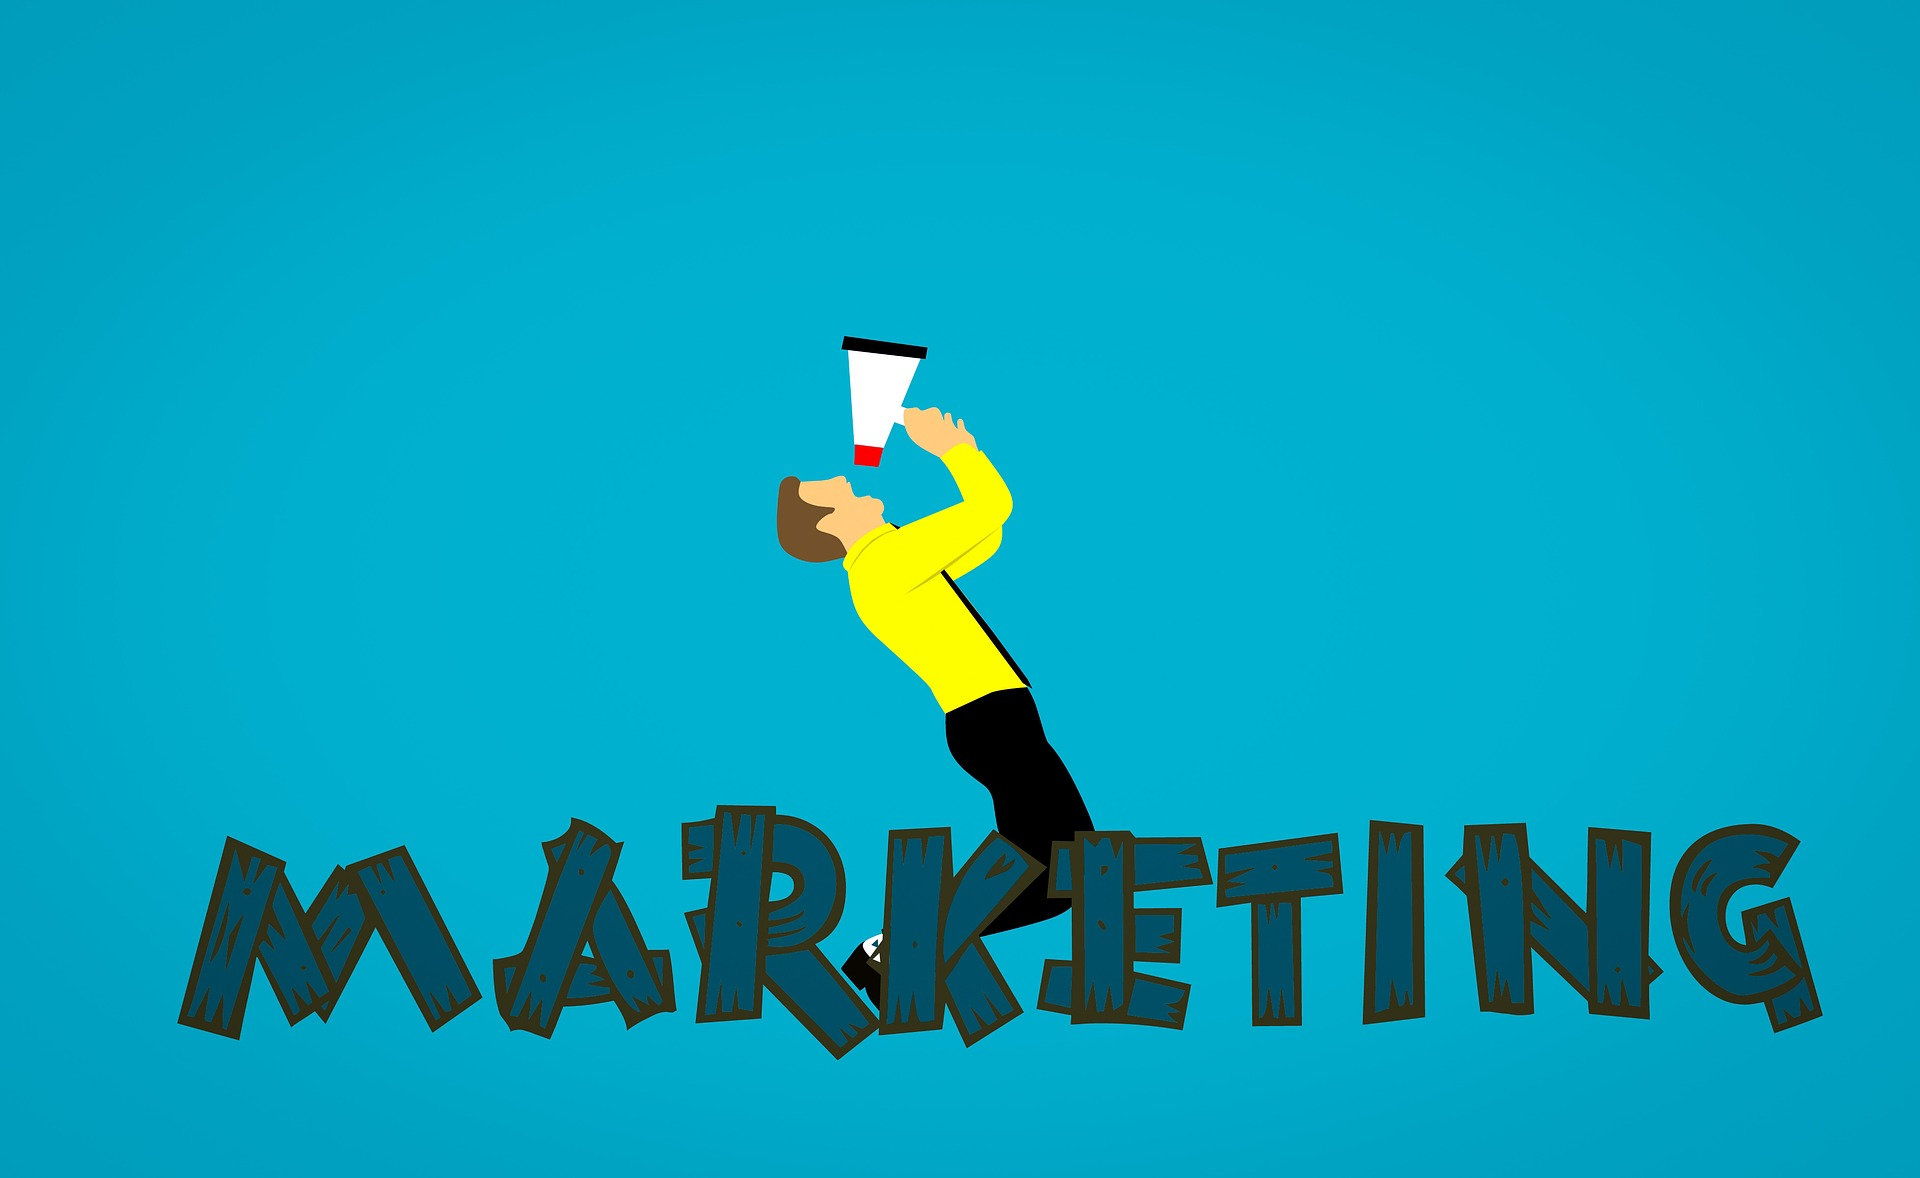 digital marketing Graphic of a man with speakerphone, with letters marketing at the bottom.